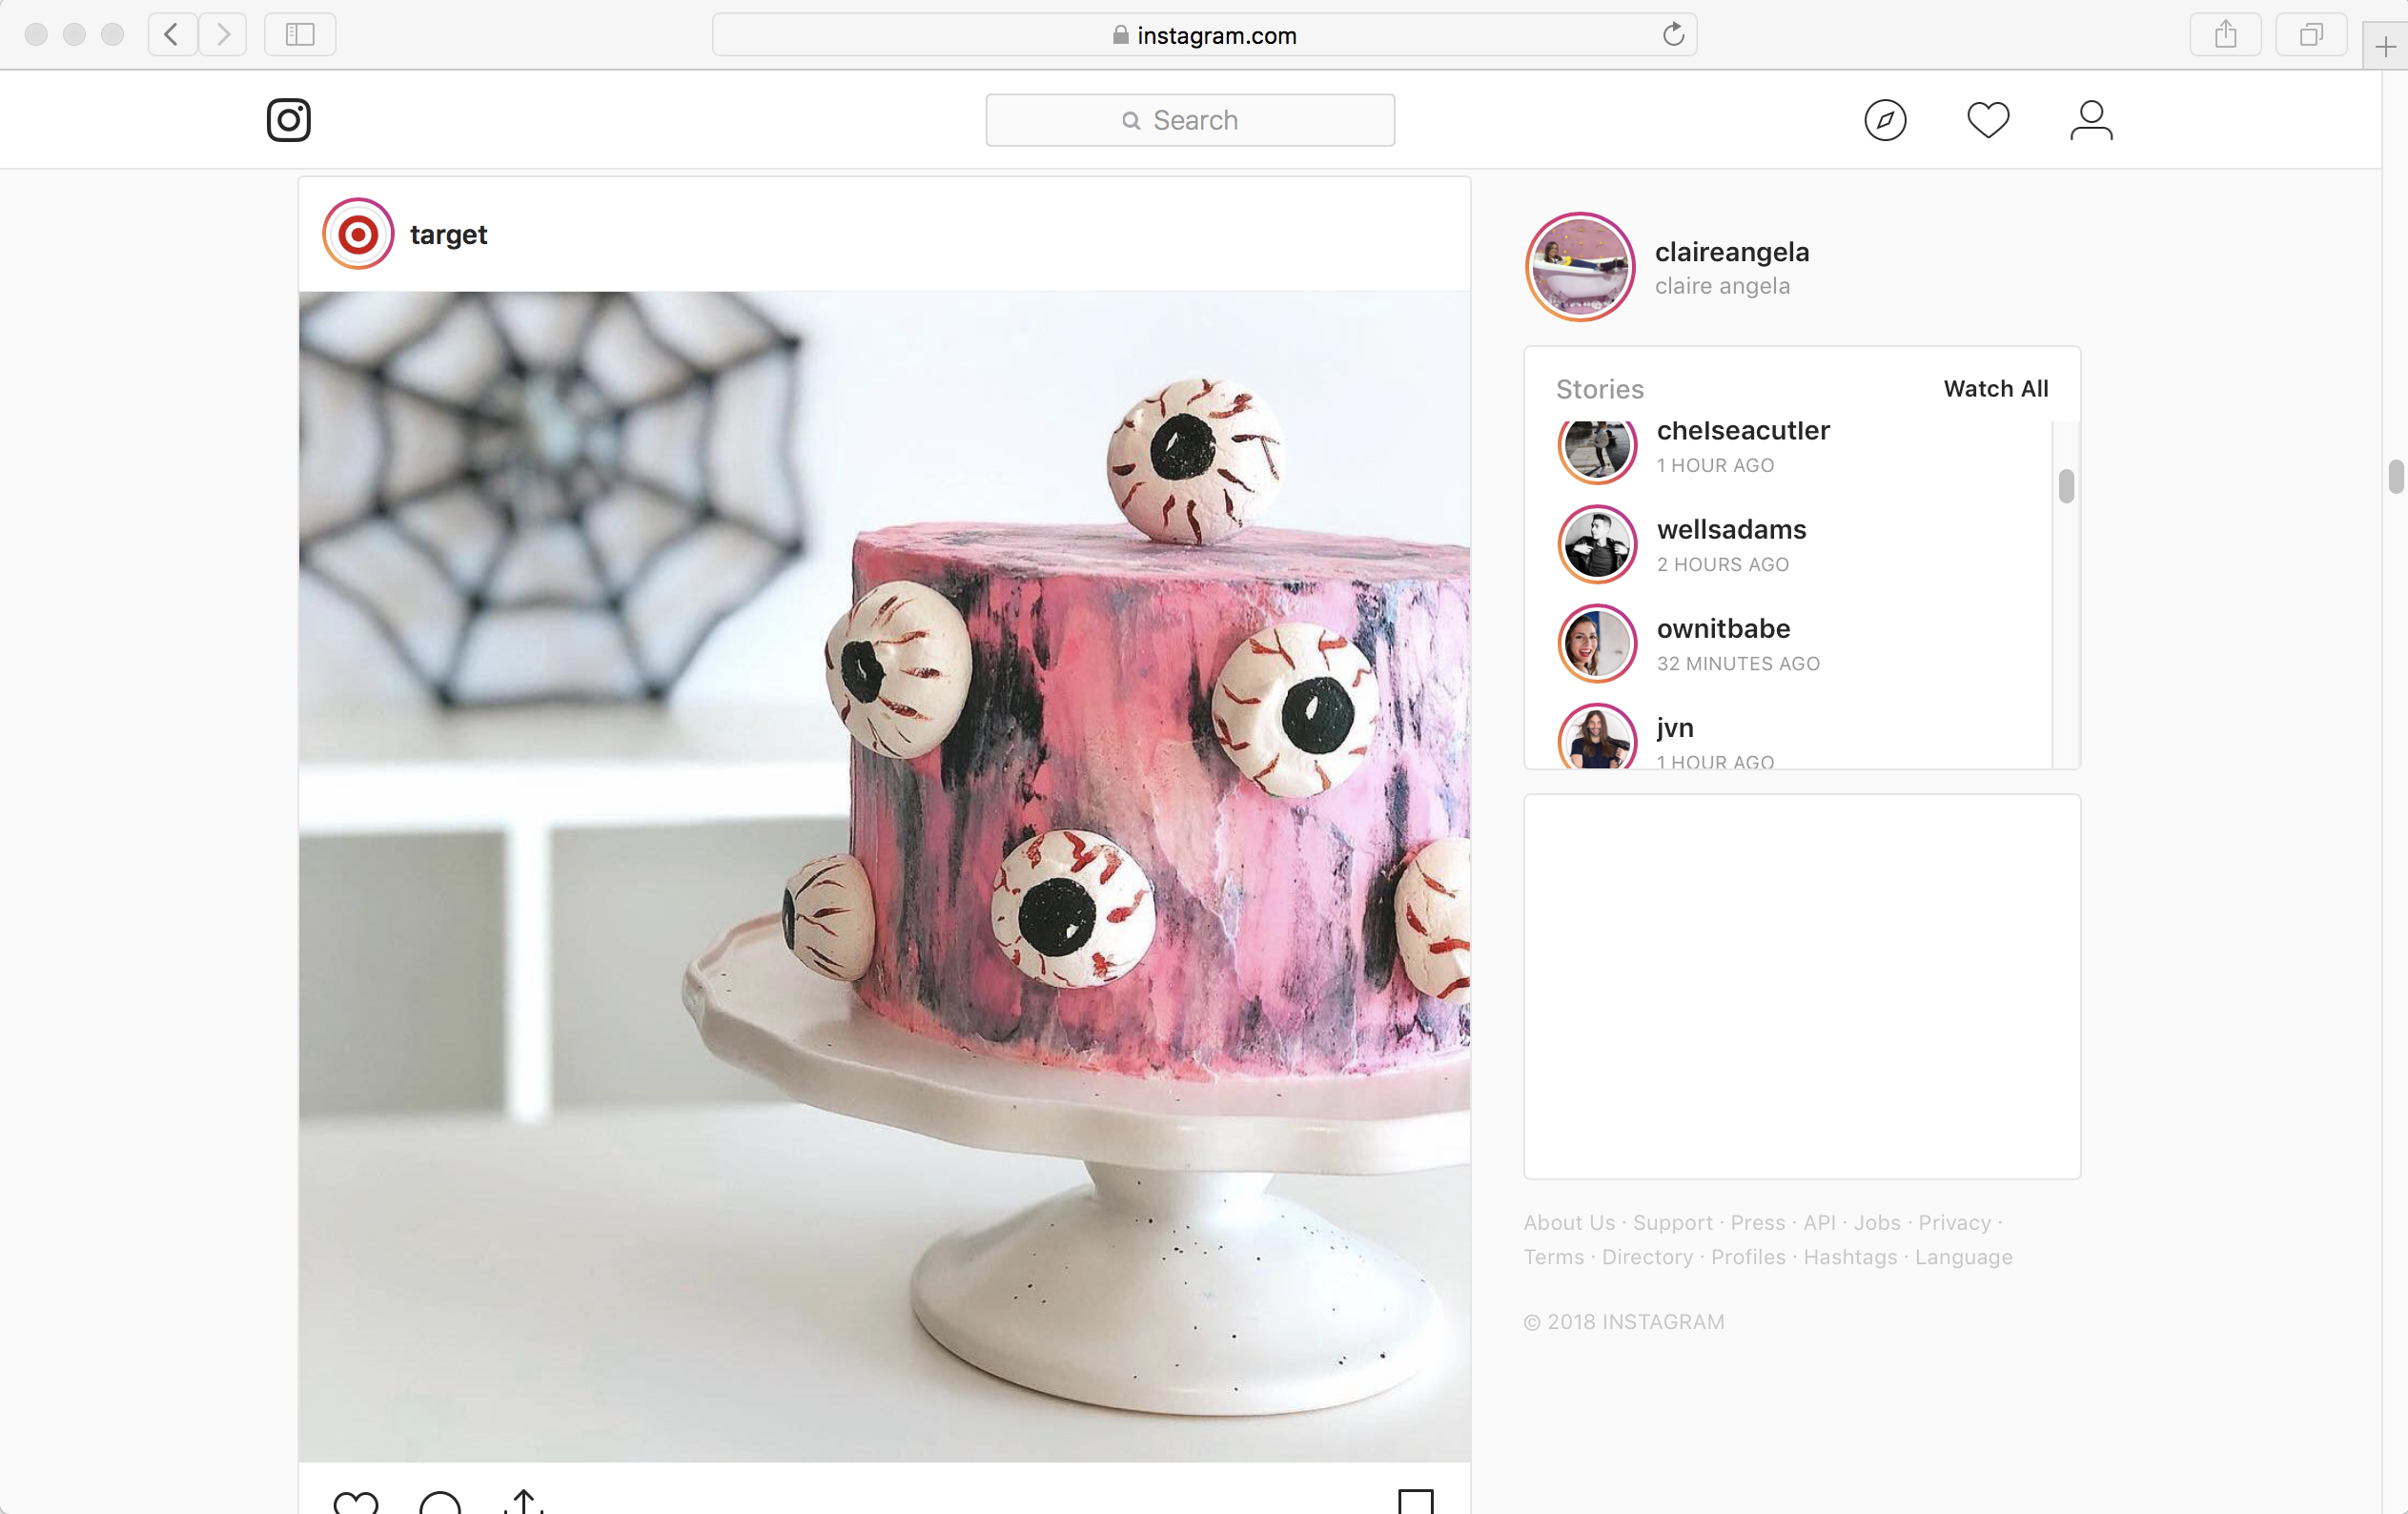 How to Post on Instagram from PC on Safari Step 1